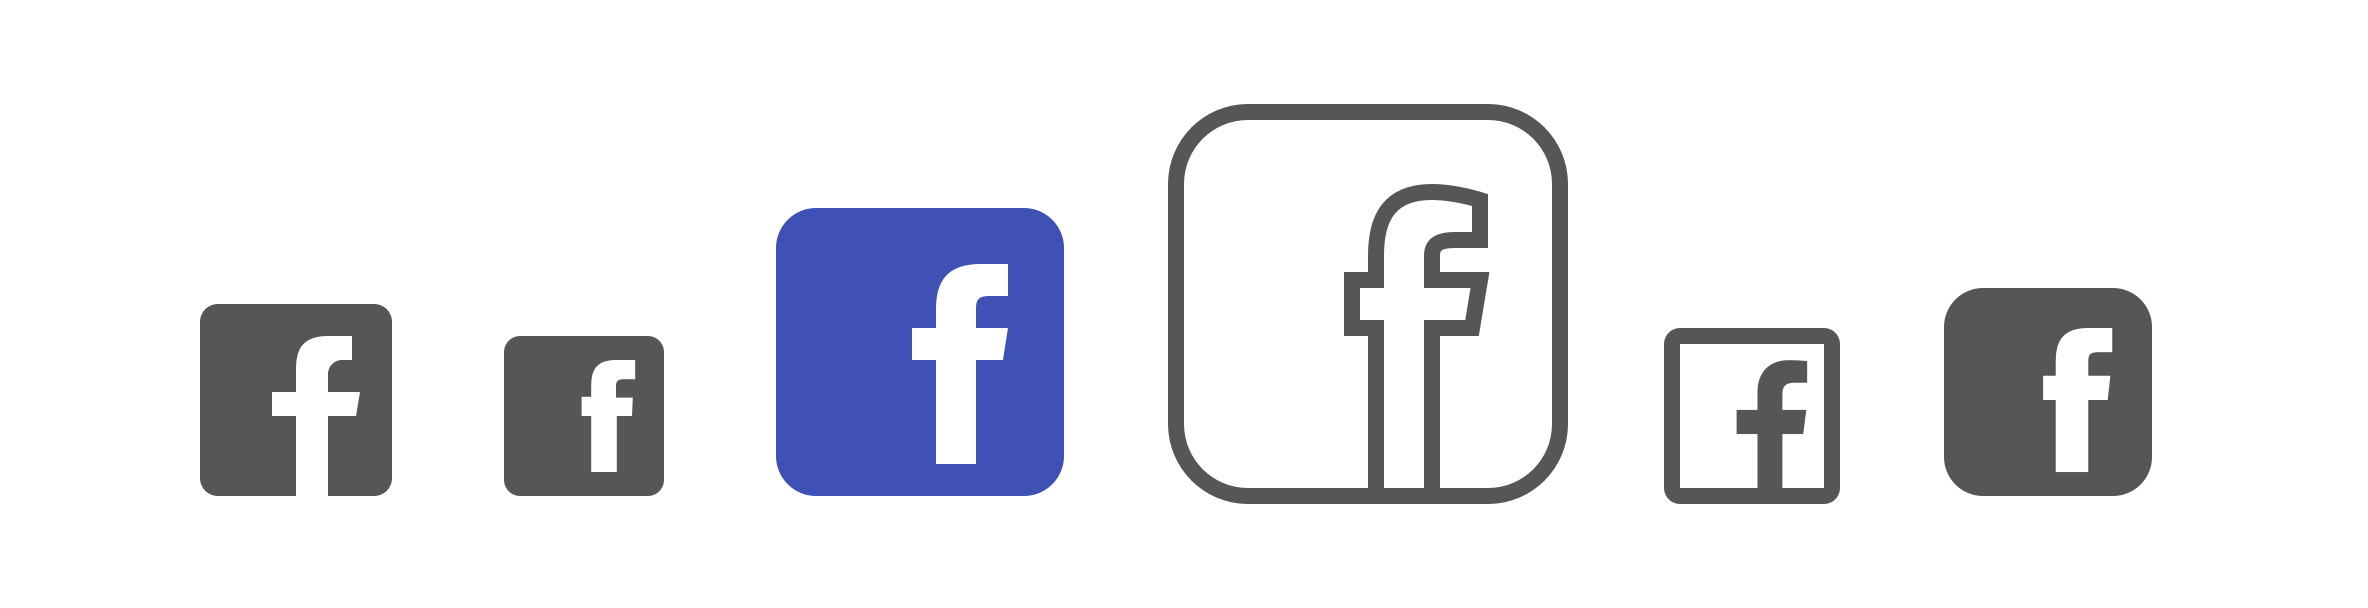 2368x608 Collection Of Free Facebook Vector Wordmark. Download On Ubisafe